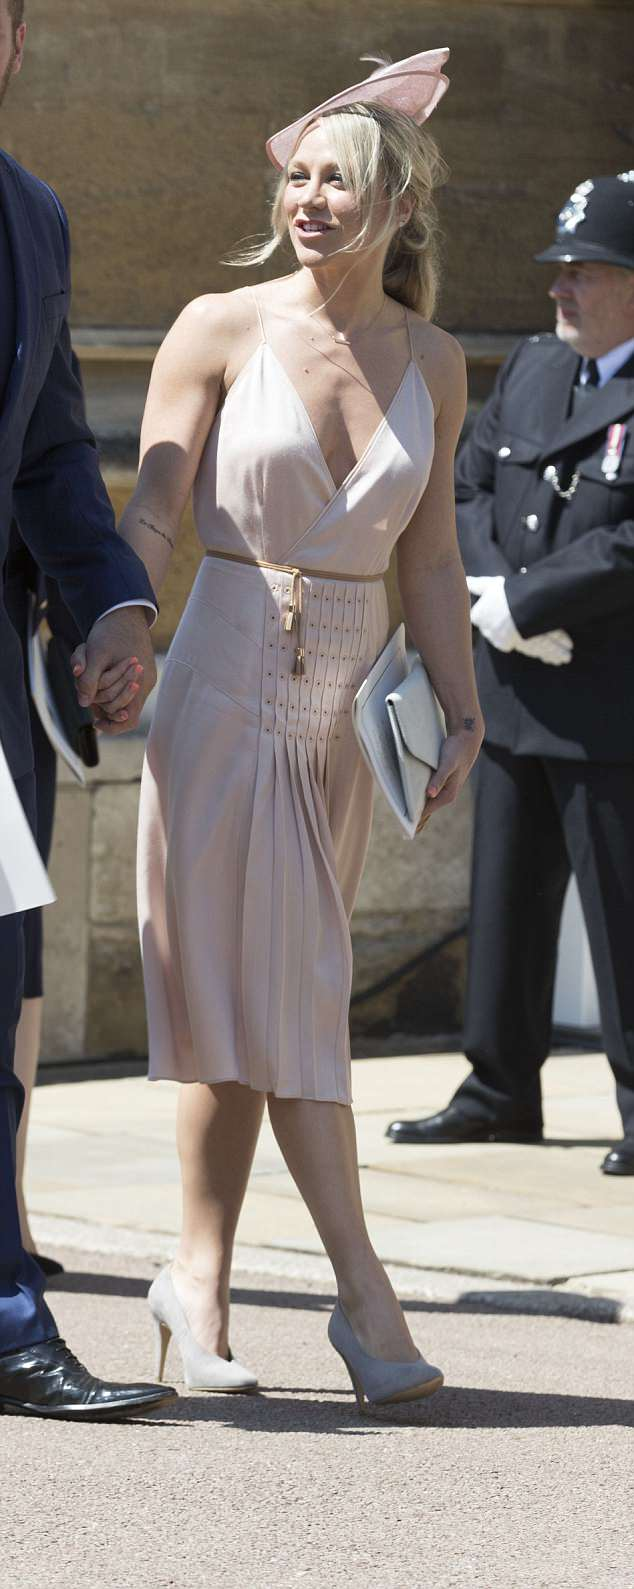 George and Amal Clooney at the Royal Wedding - Page 2 4C71381300000578-5751241-Cleavage_on_view_from_Chloe_Madeley_in_Reiss_a_bra_and_a_jacket_-a-45_1526885492222